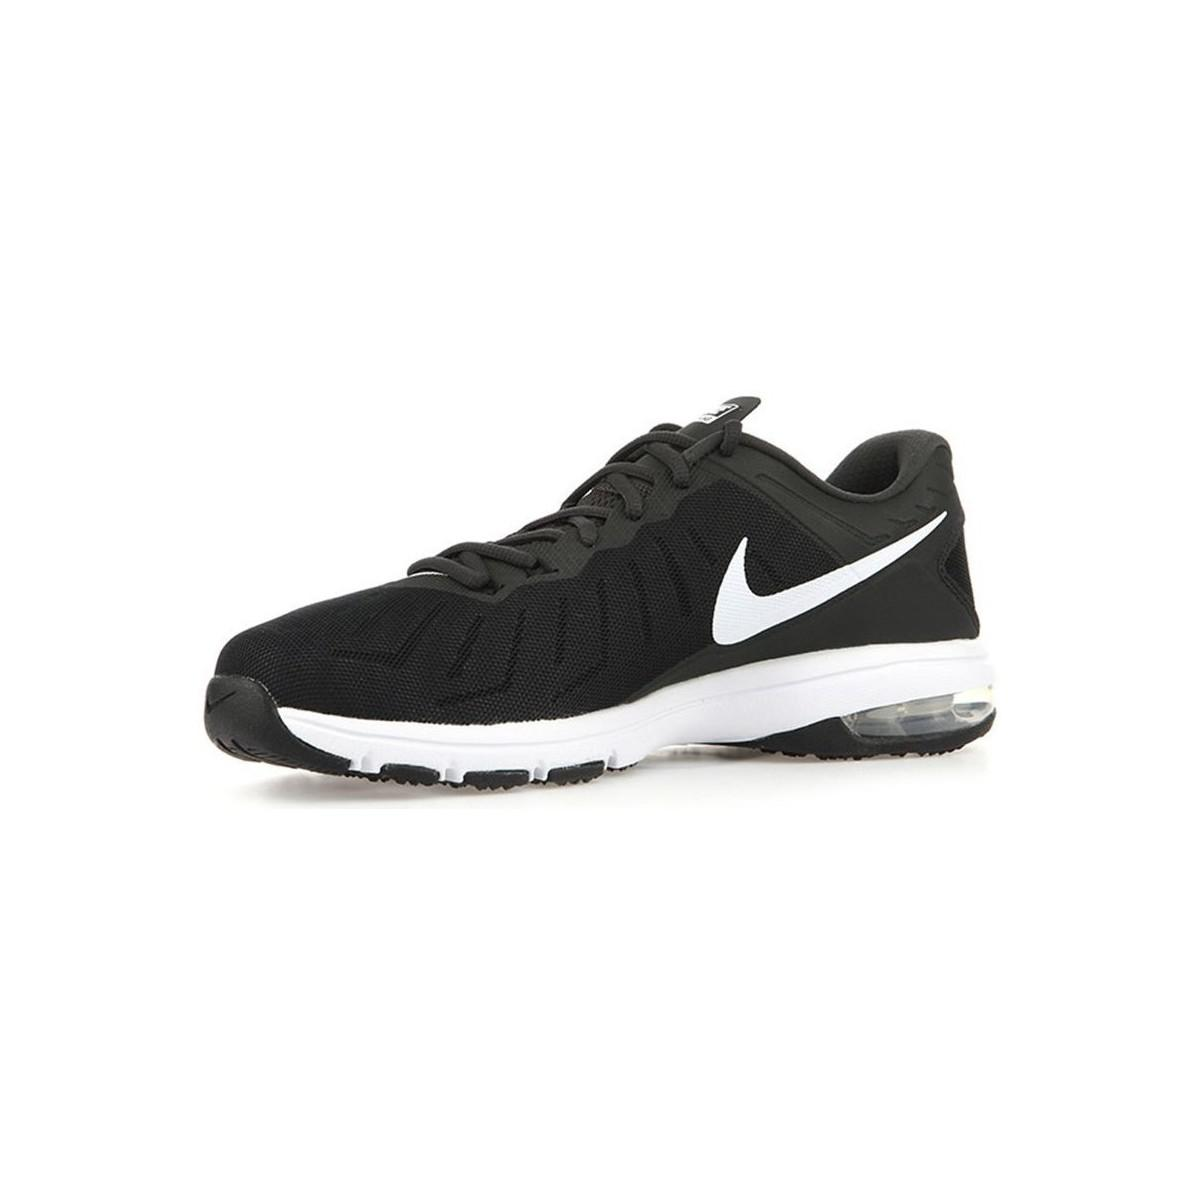 ... discount code for nike air max full ride tr mens running trainers in  black in black 8a9cf2861